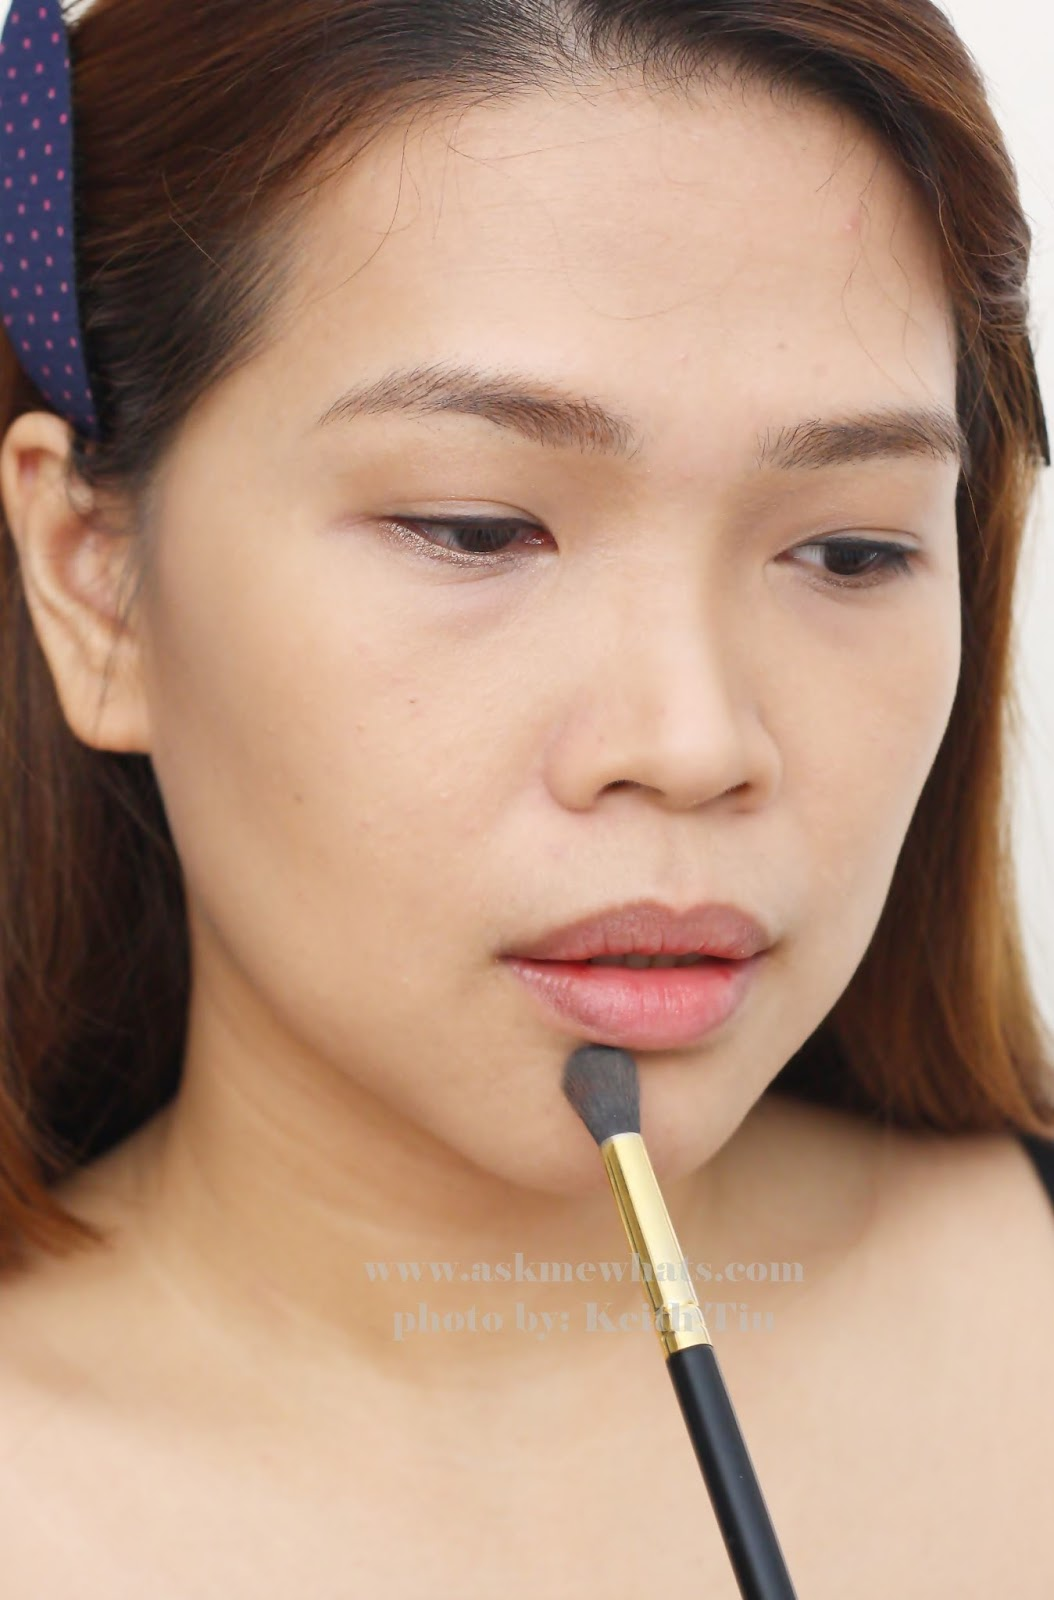 If You Find Some Obvious Demarcation, Use A Clean Big Fluffy Powder Brush  And Blend Exfoliate Your Lips